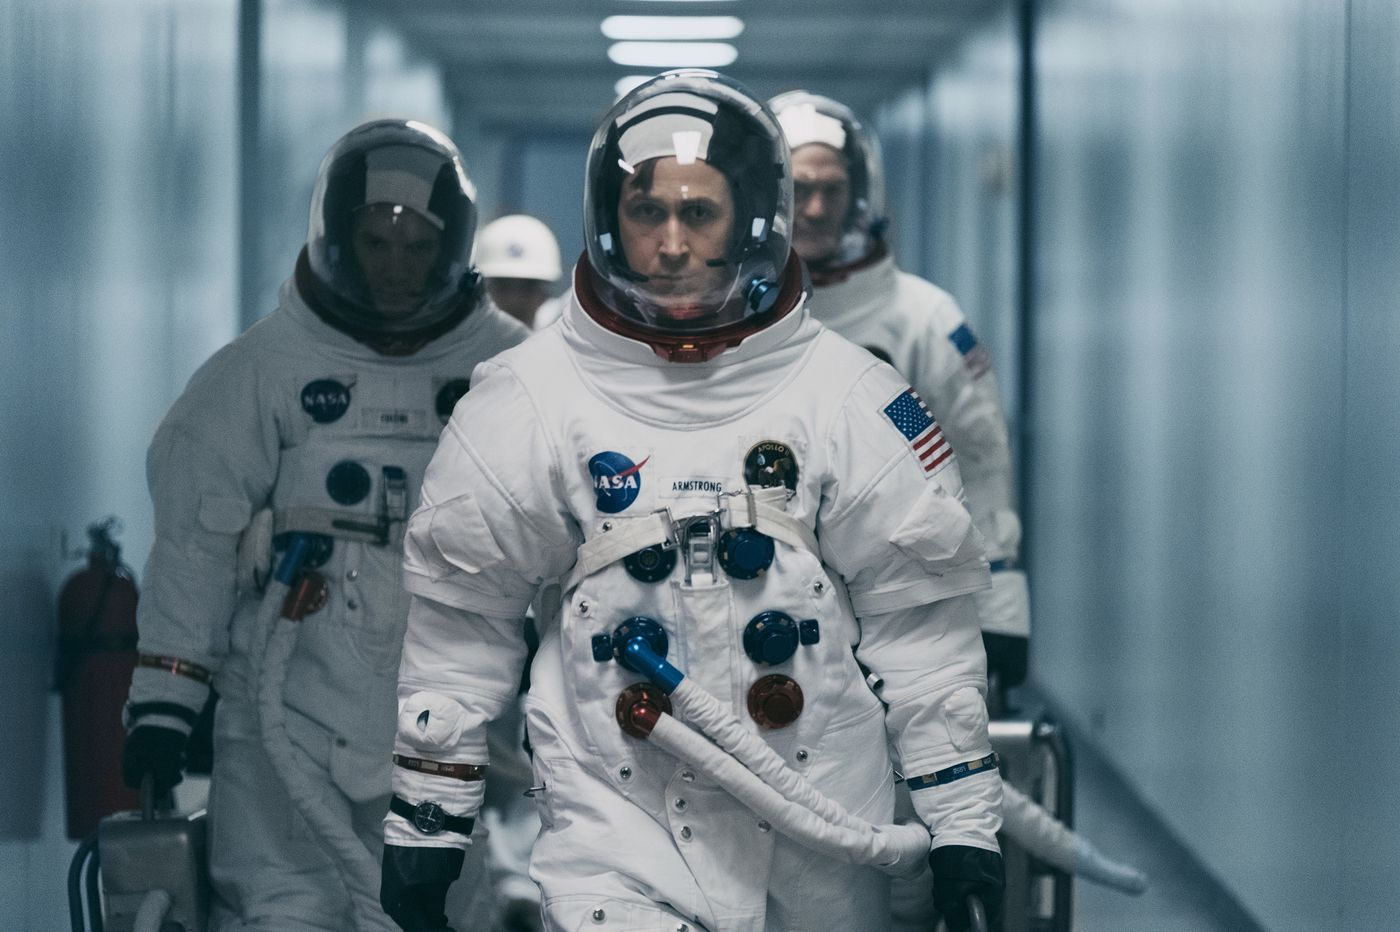 'First Man' scribe Josh Singer waves off the movie's flag controversy